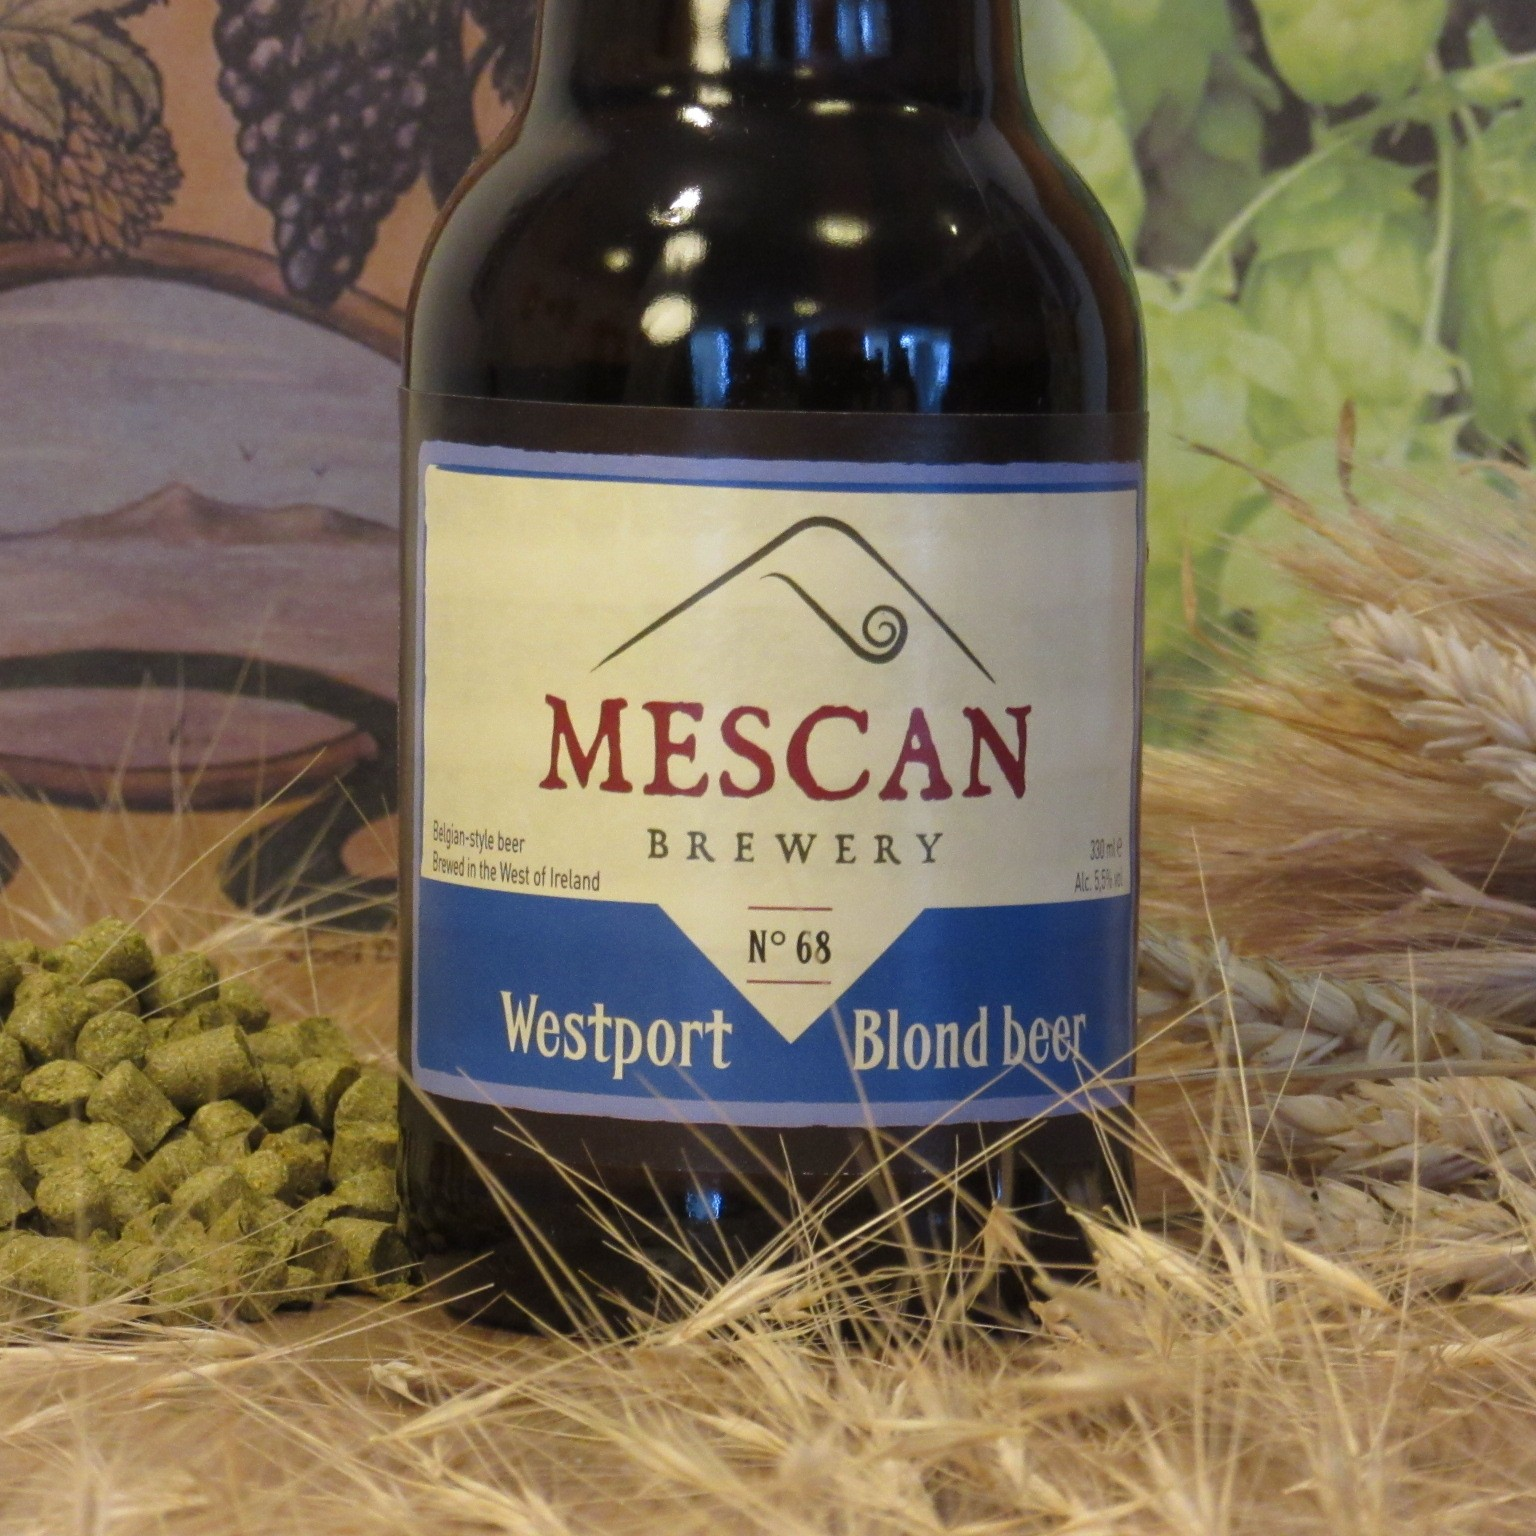 Mescan Westport Blond